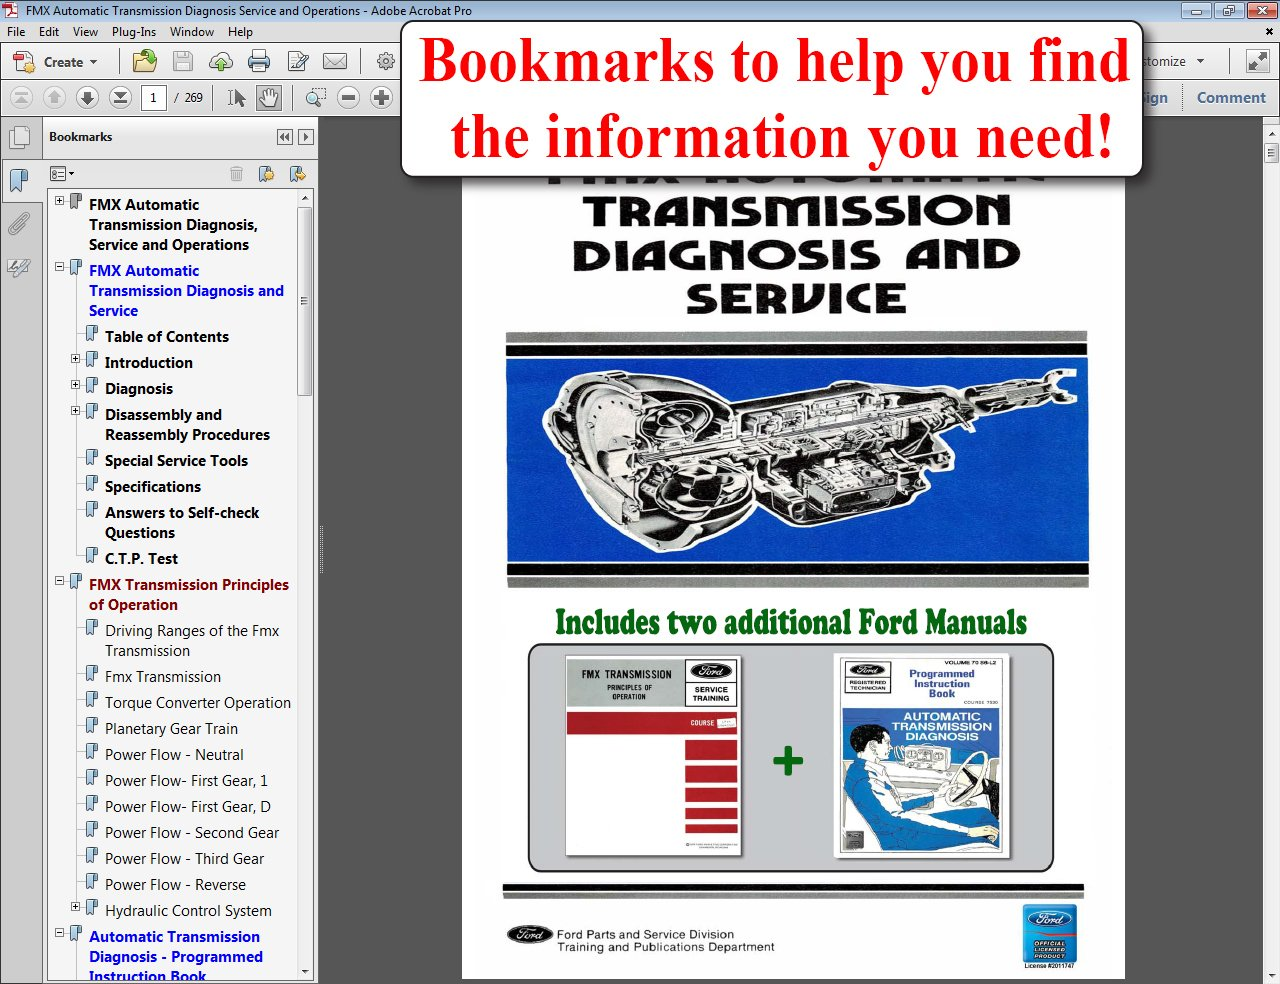 Fmx Automatic Transmission Diagnosis Service And Training Manual Wiring Diagram Ford Motor Company 9781603711999 Books